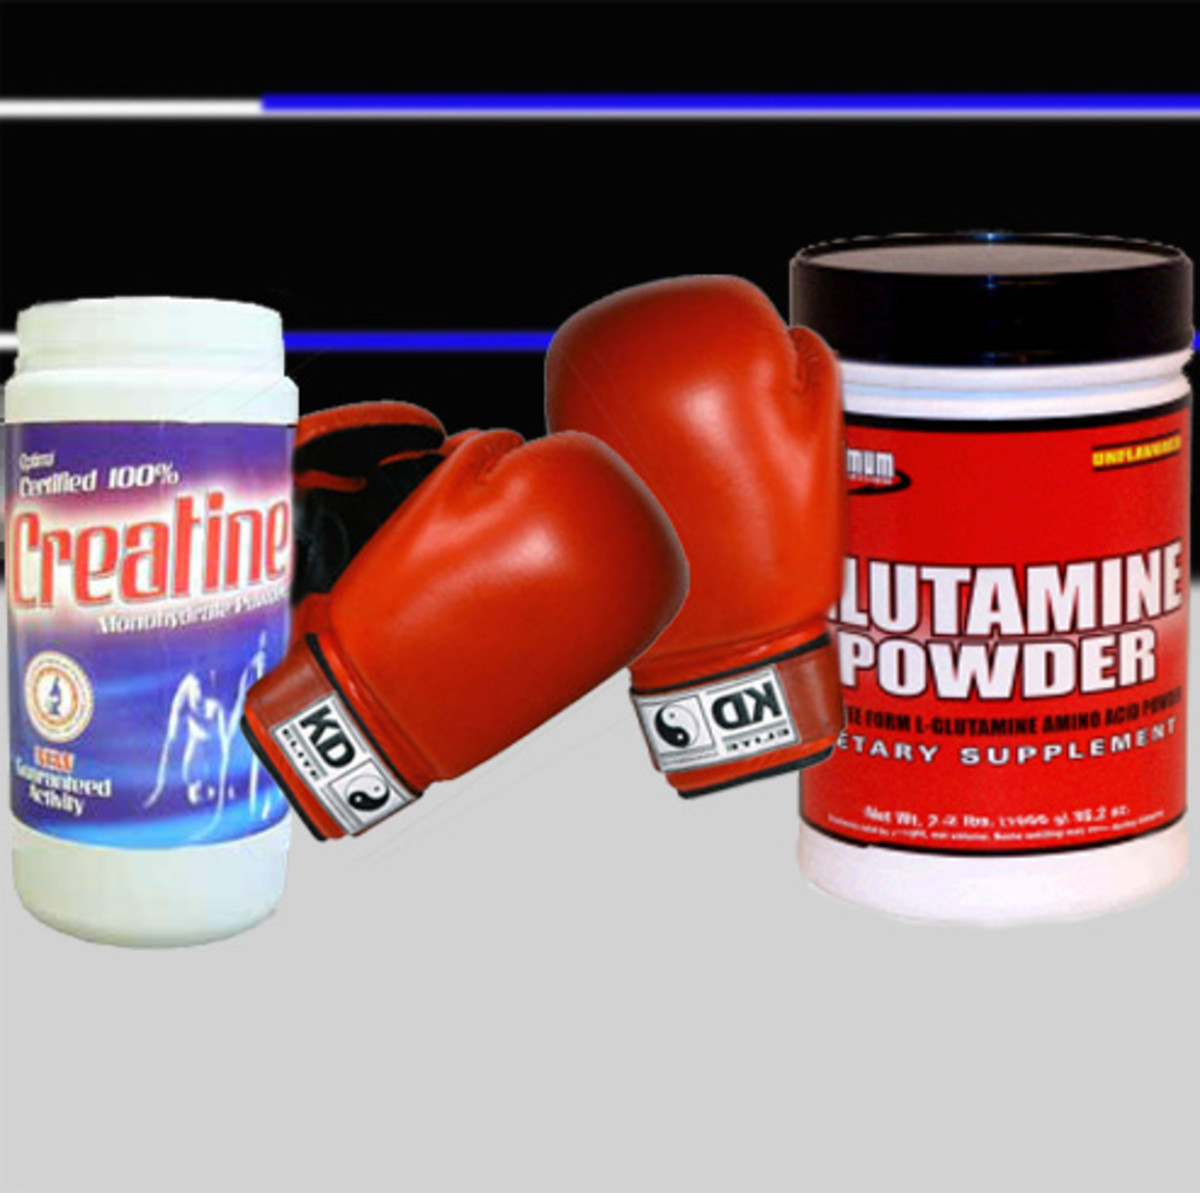 Creatine vs Glutamine - Final Comparison